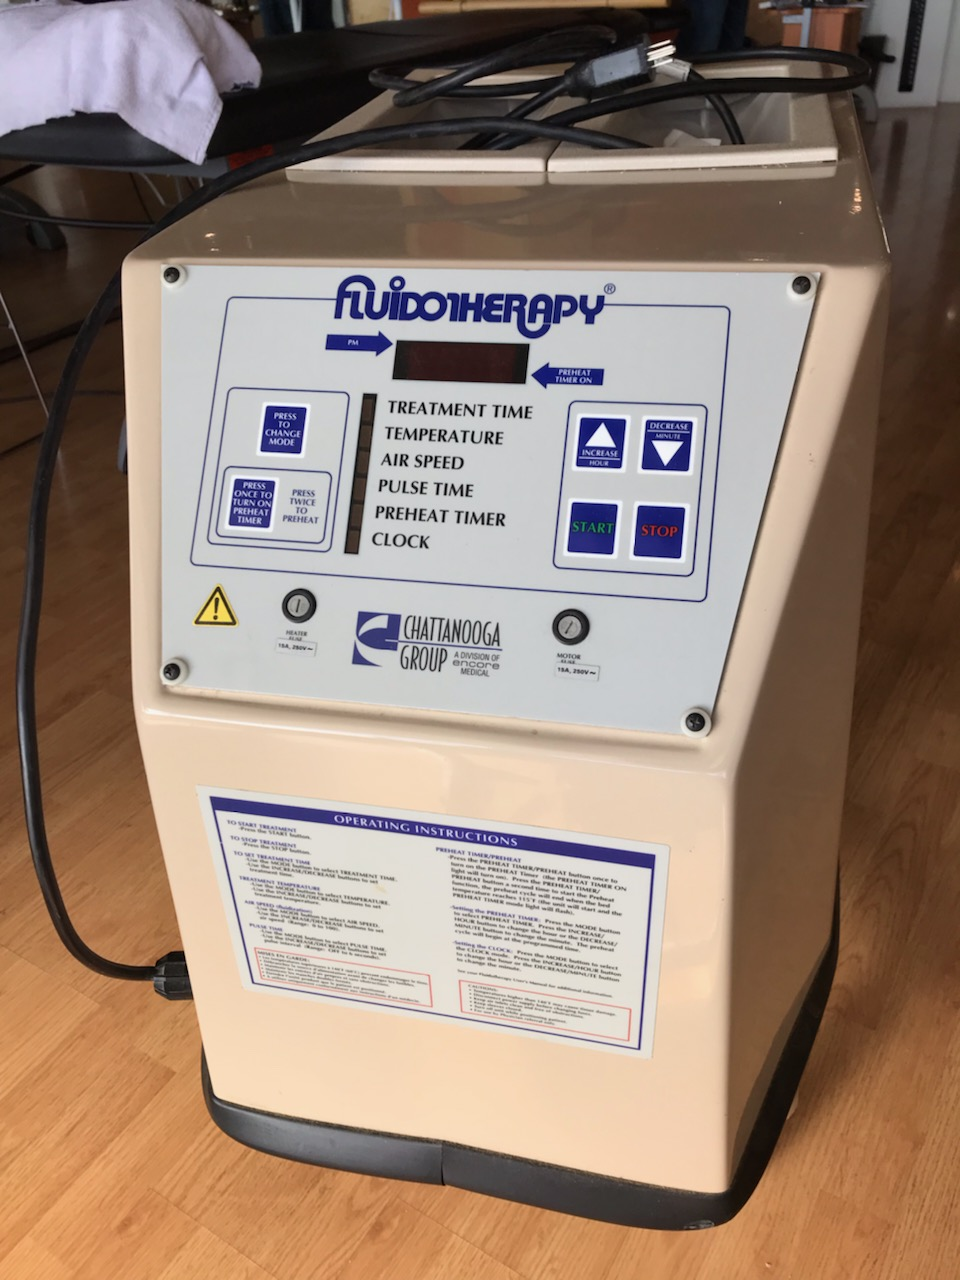 FLUIDOTHERAPY DOUBLE EXTEMITY UNIT